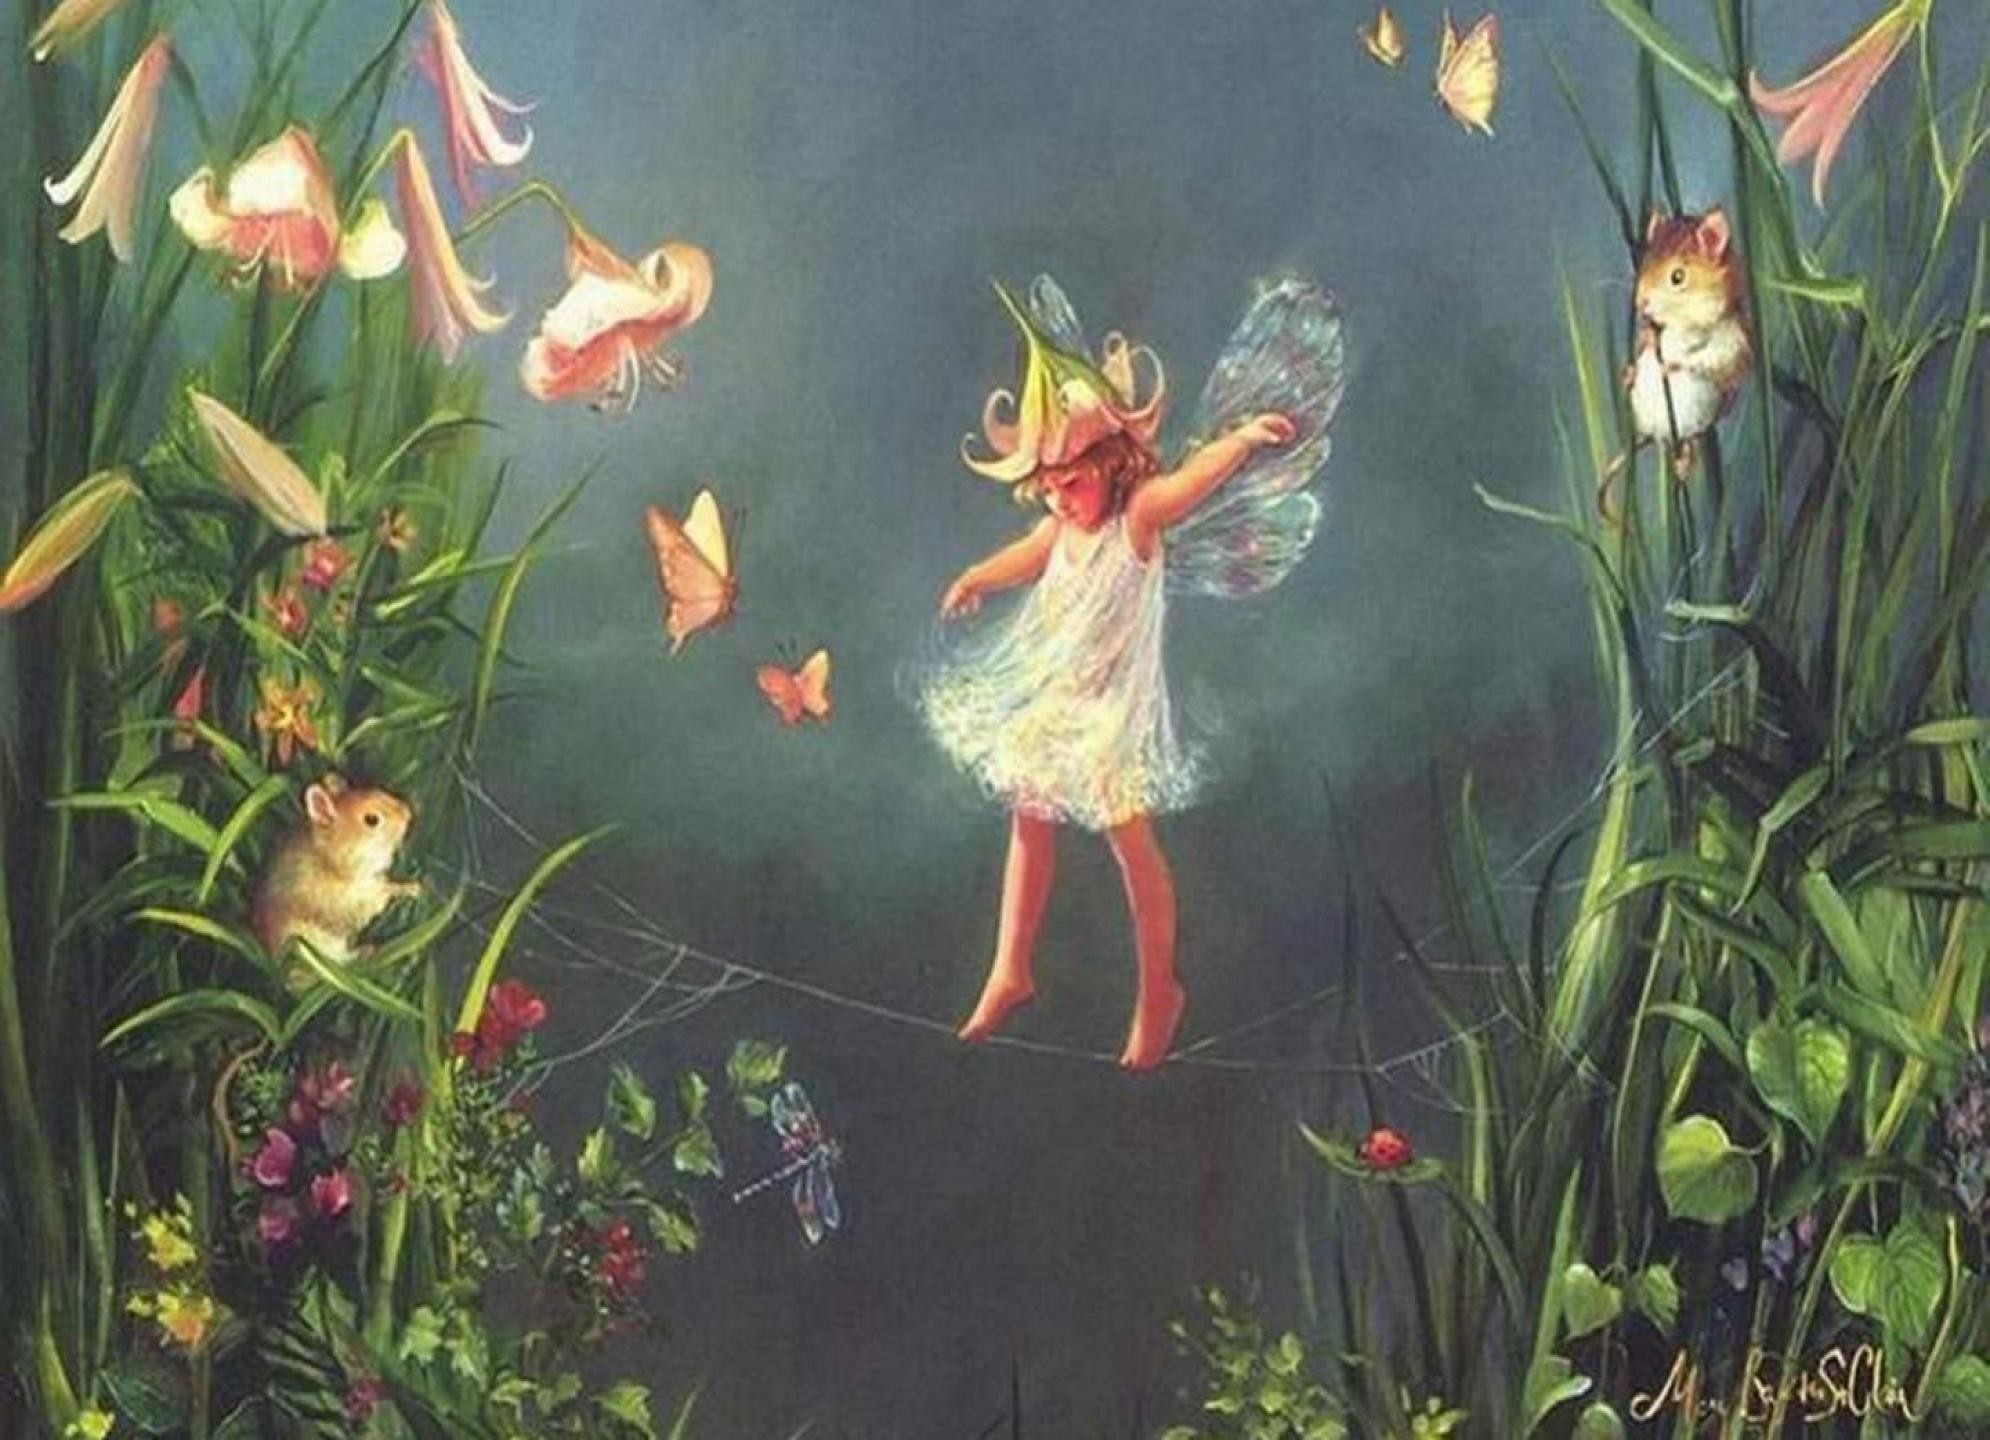 Fairy Wallpapers HD Wallpapers Download Free Images Wallpaper [1000image.com]